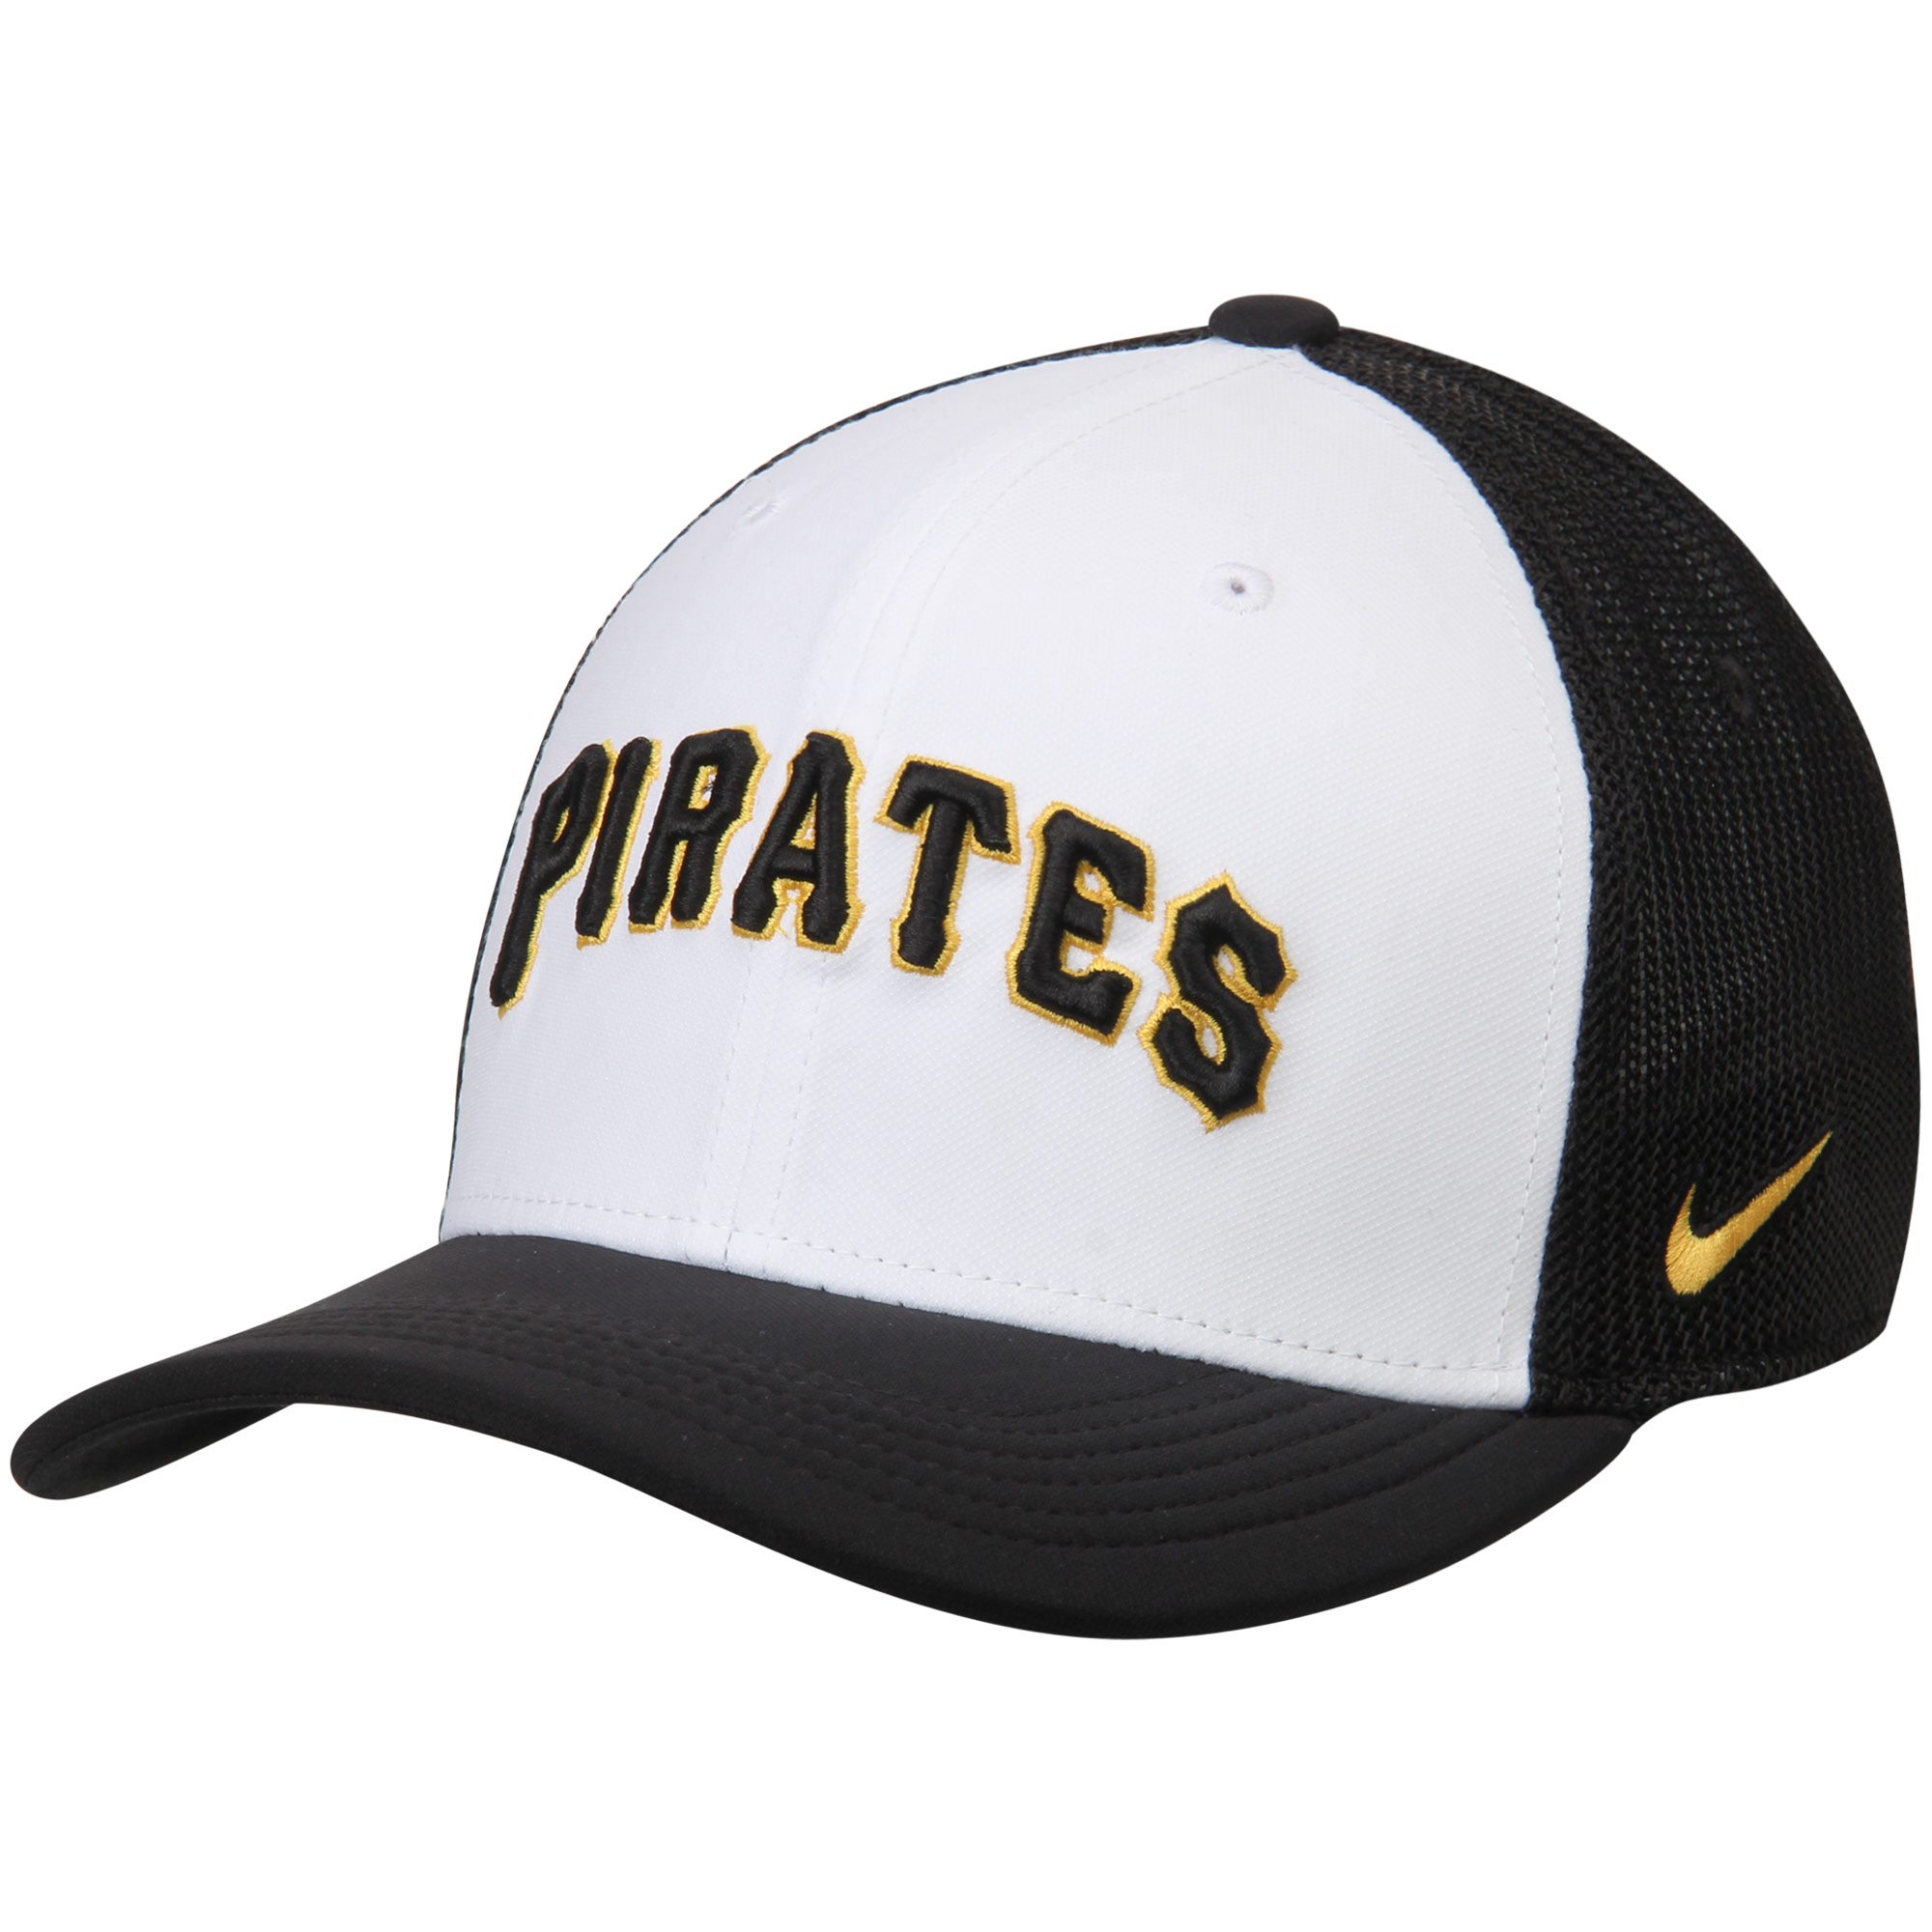 Pittsburgh Pirates Nike Vapor Performance Swoosh Flex Hat - White/Black